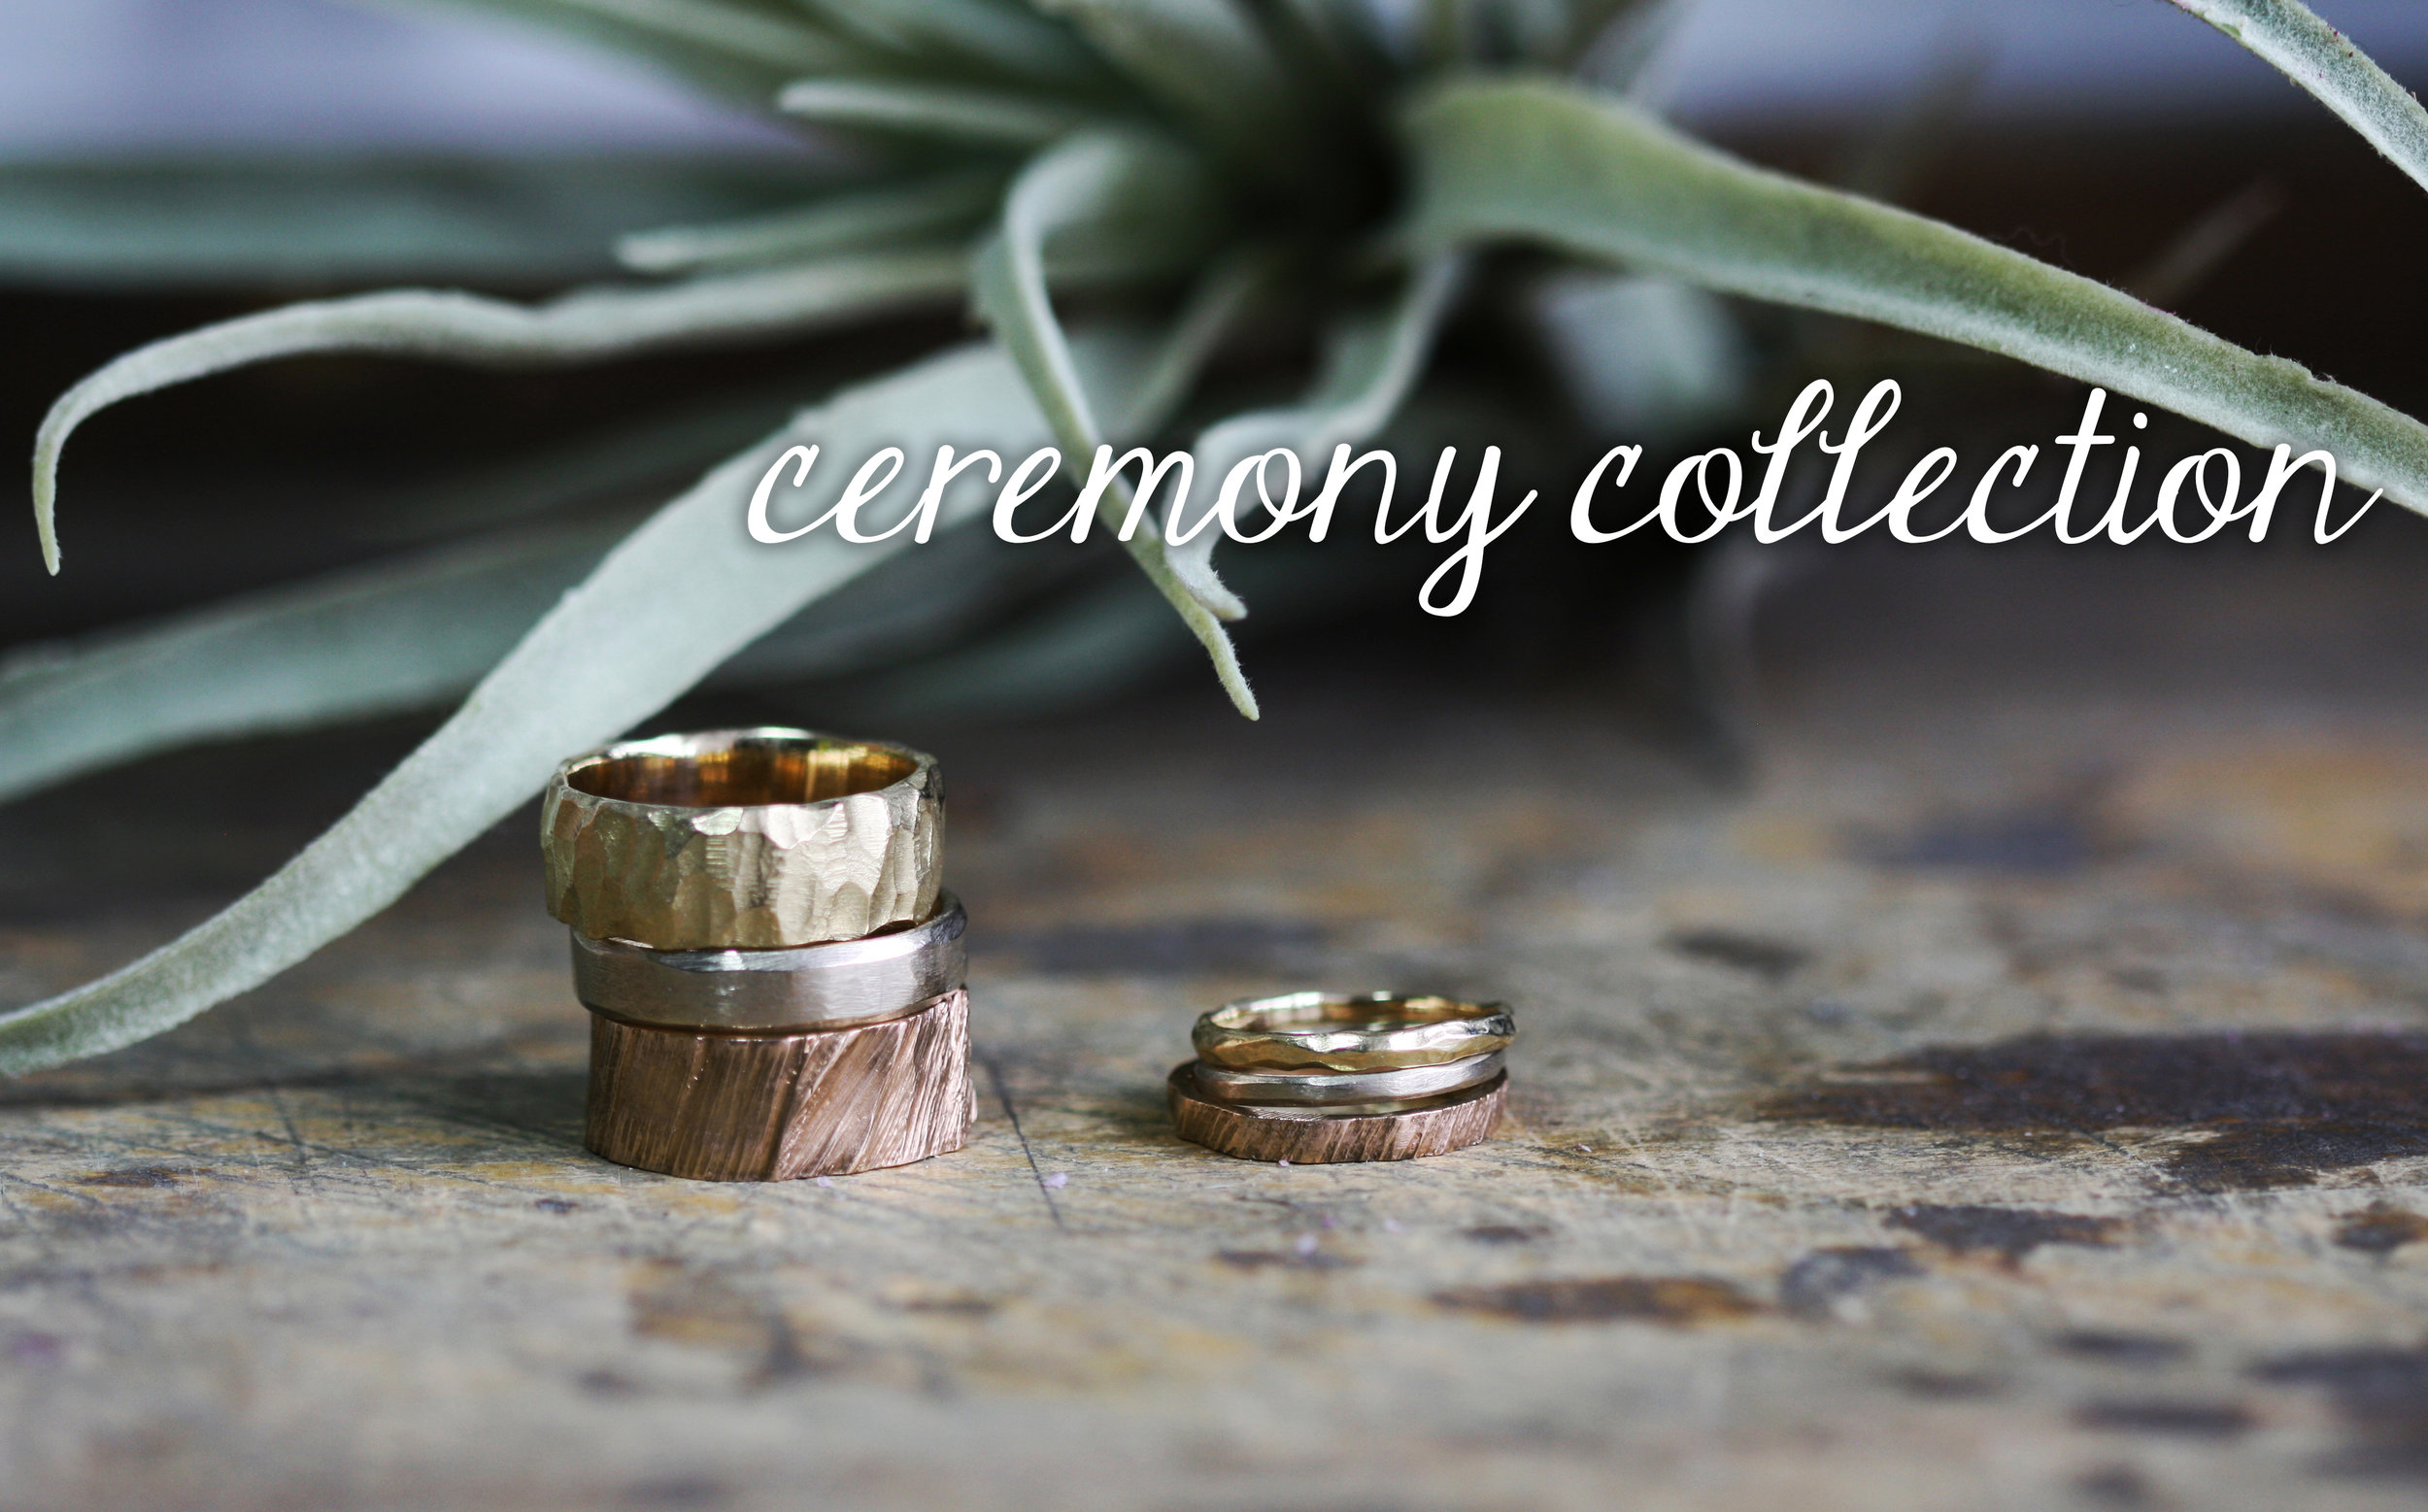 ceremony_collection_bands_plant_text.jpg